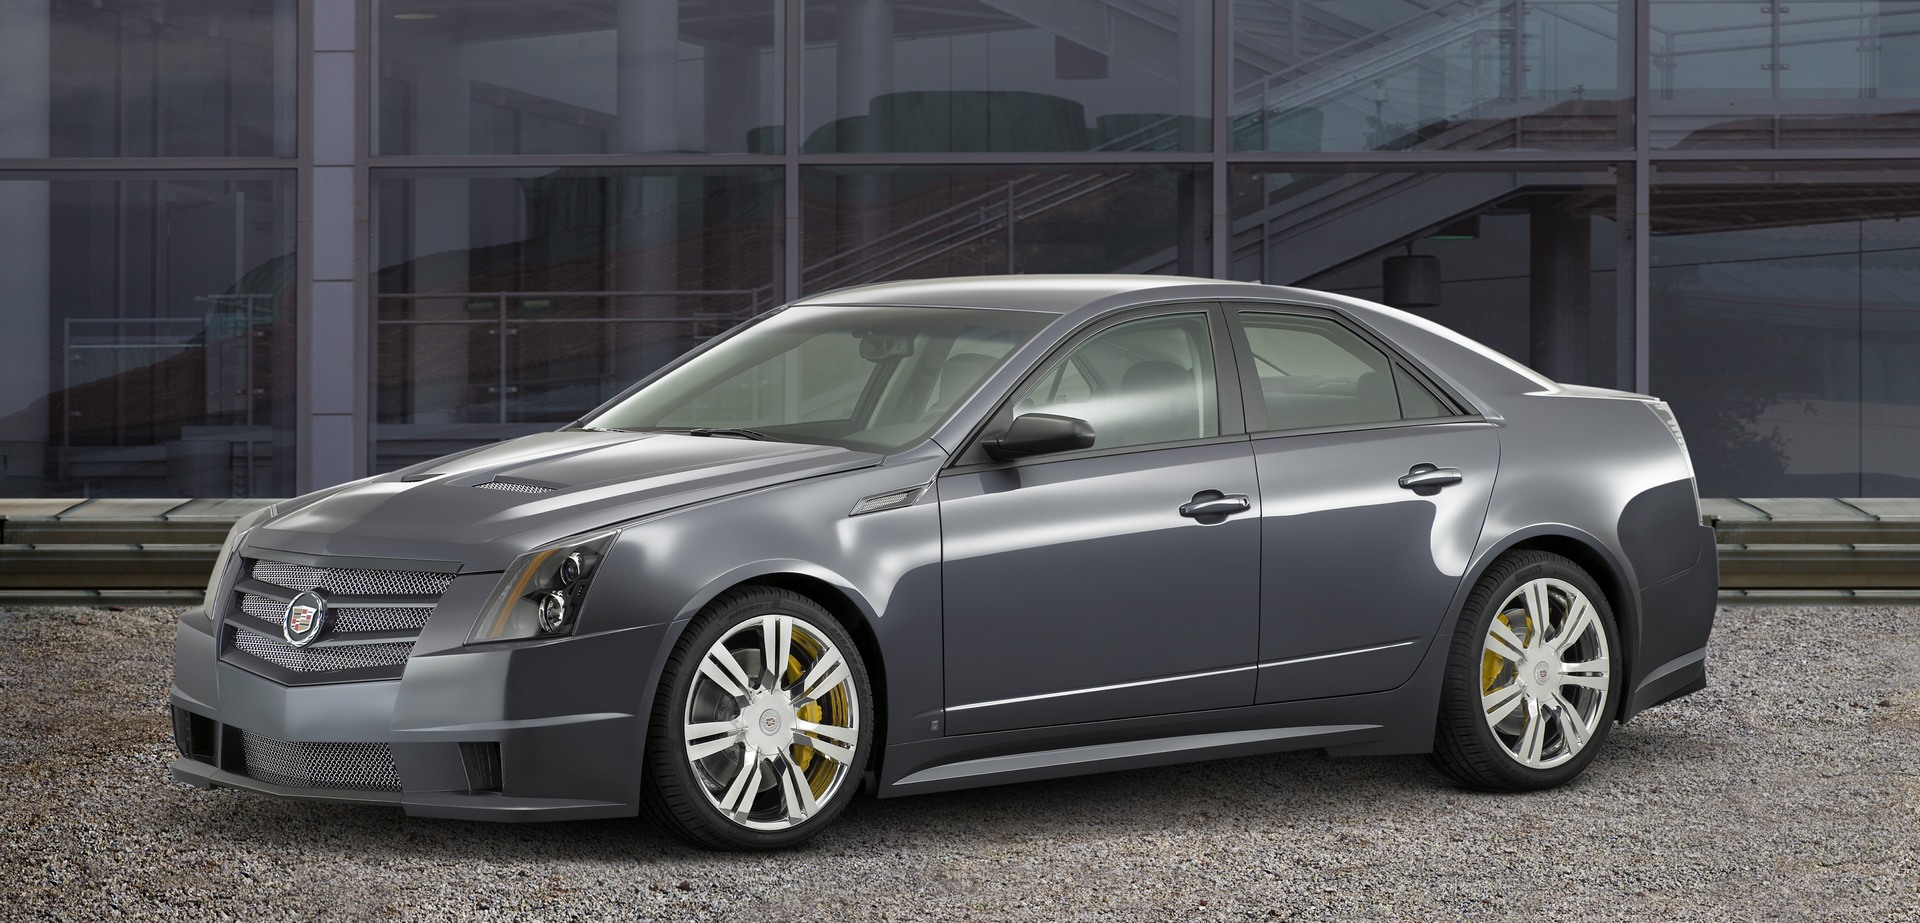 2007 Cadillac Cts Sport Concept History Pictures Value Auction